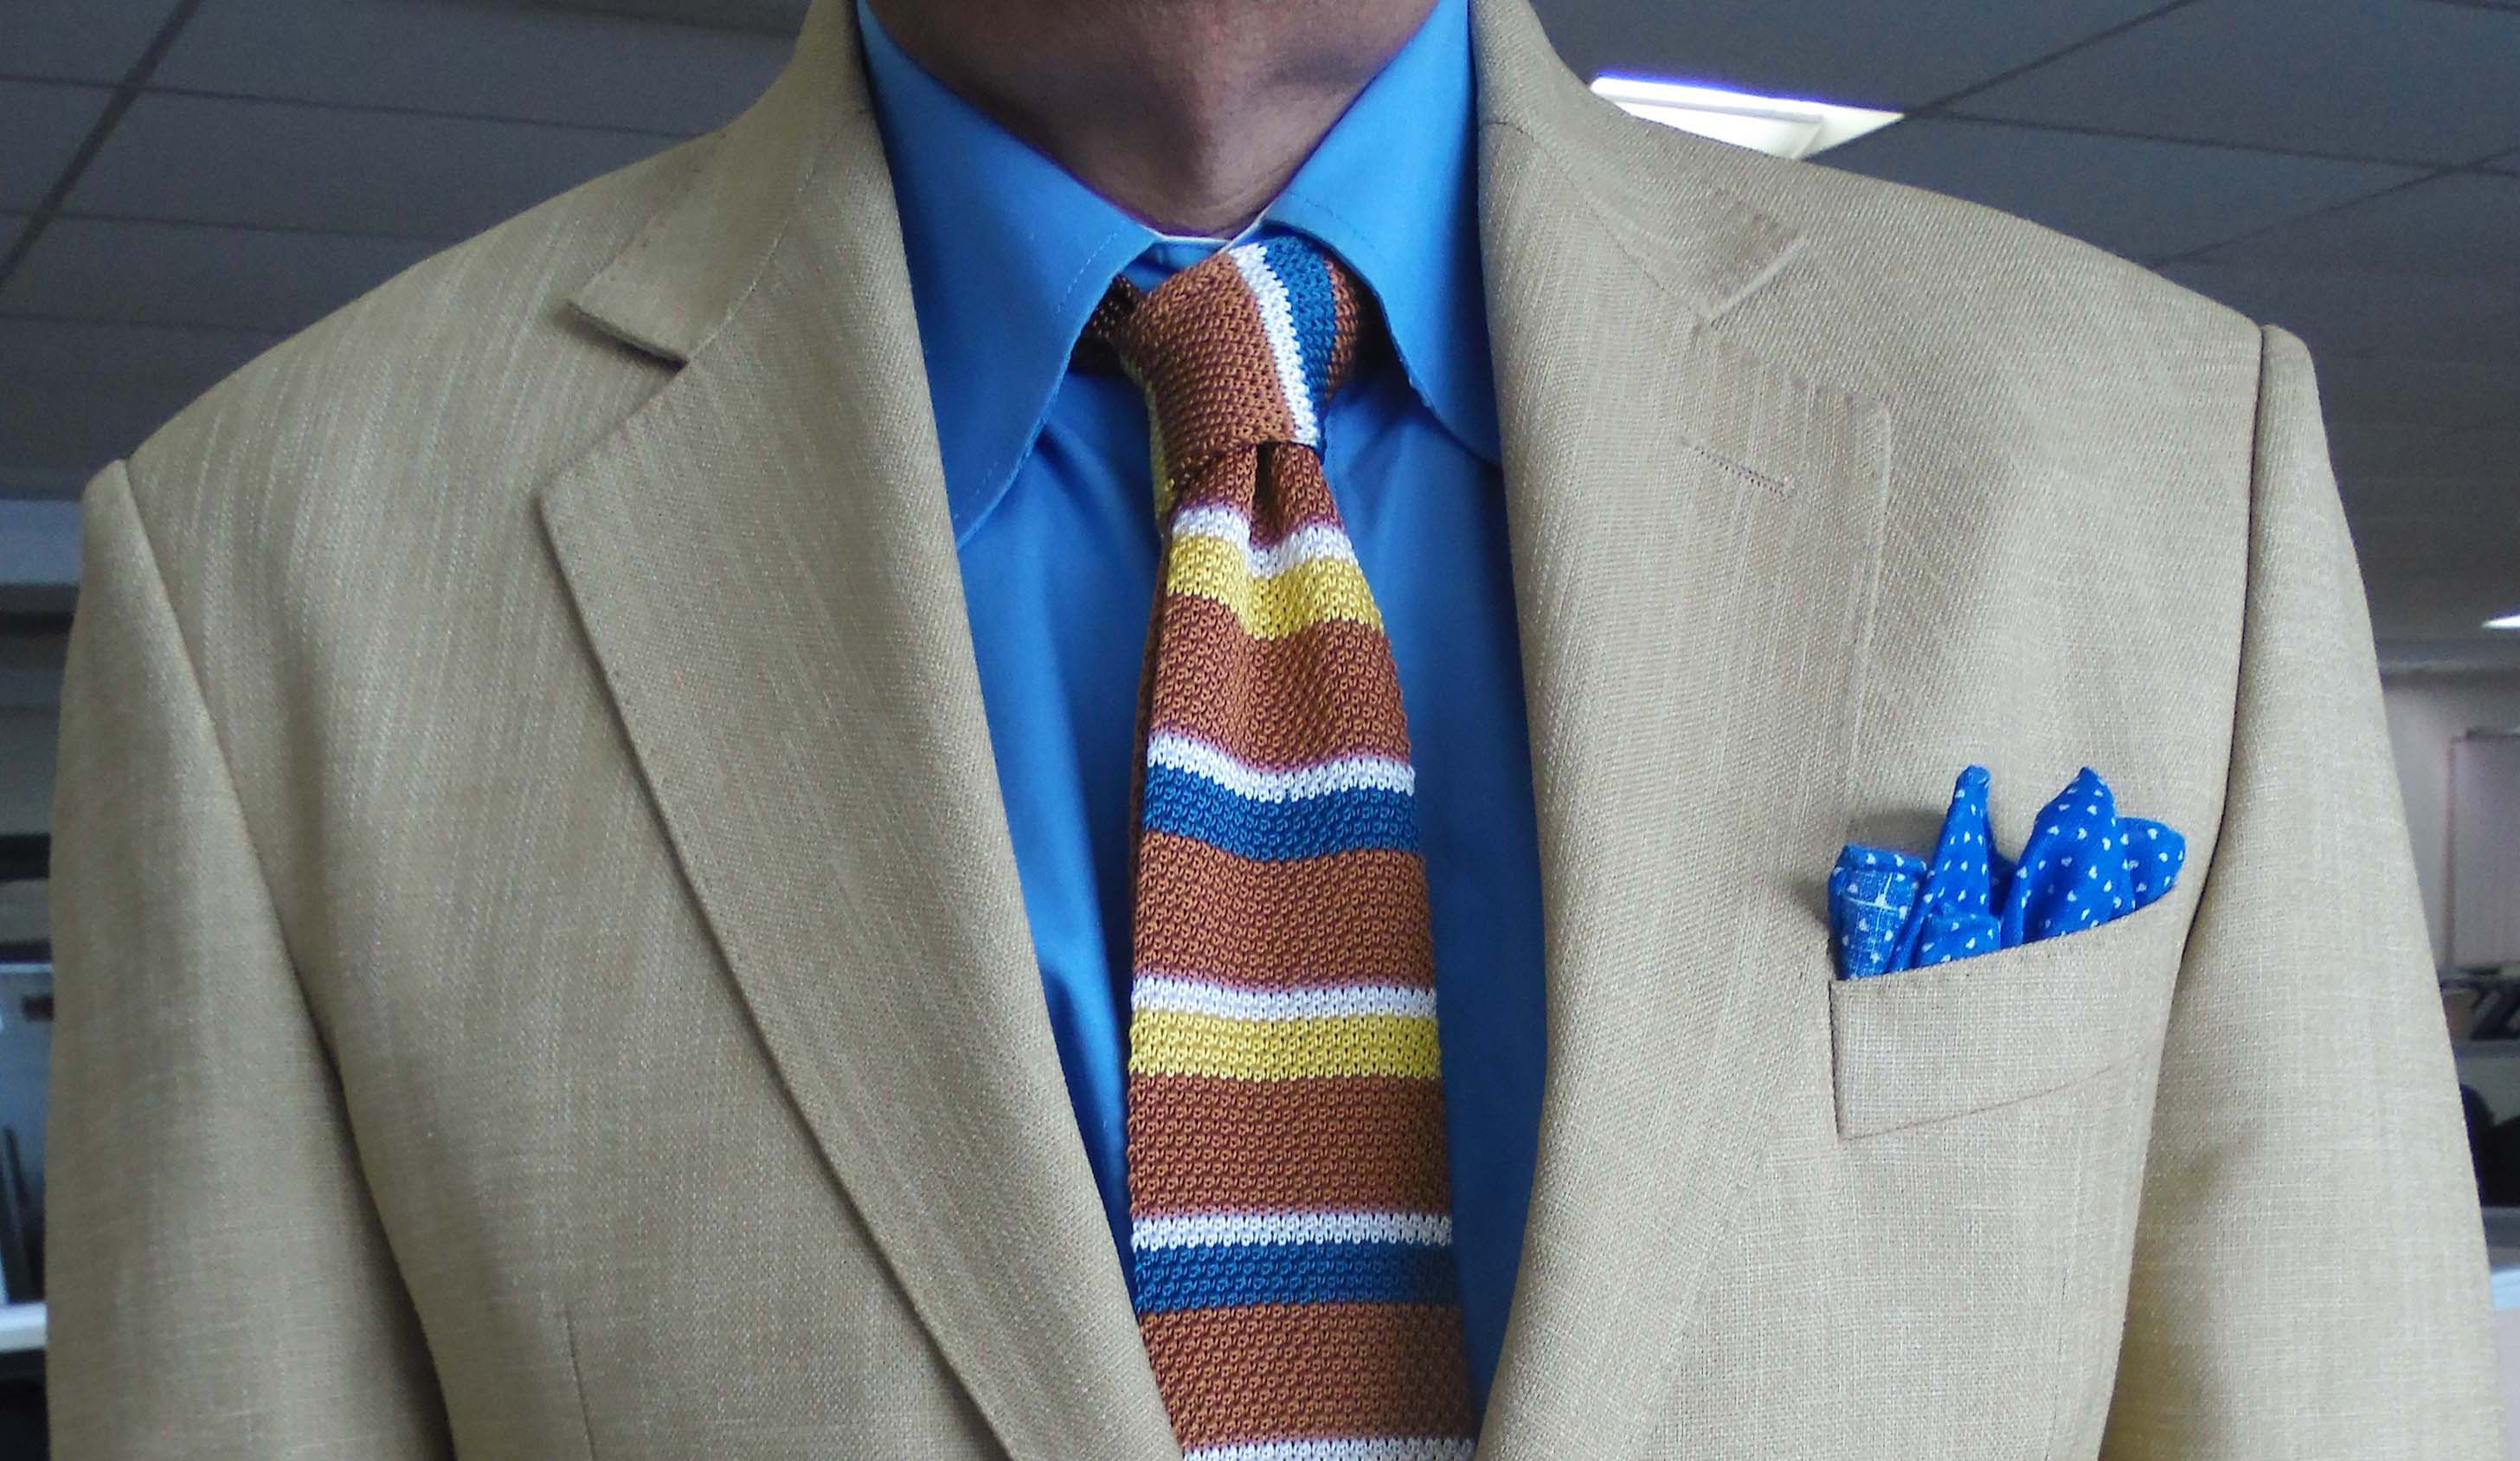 61d9251b422dd Light mustard suit, blue shirt, mustard/yellow/blue striped silk knit tie